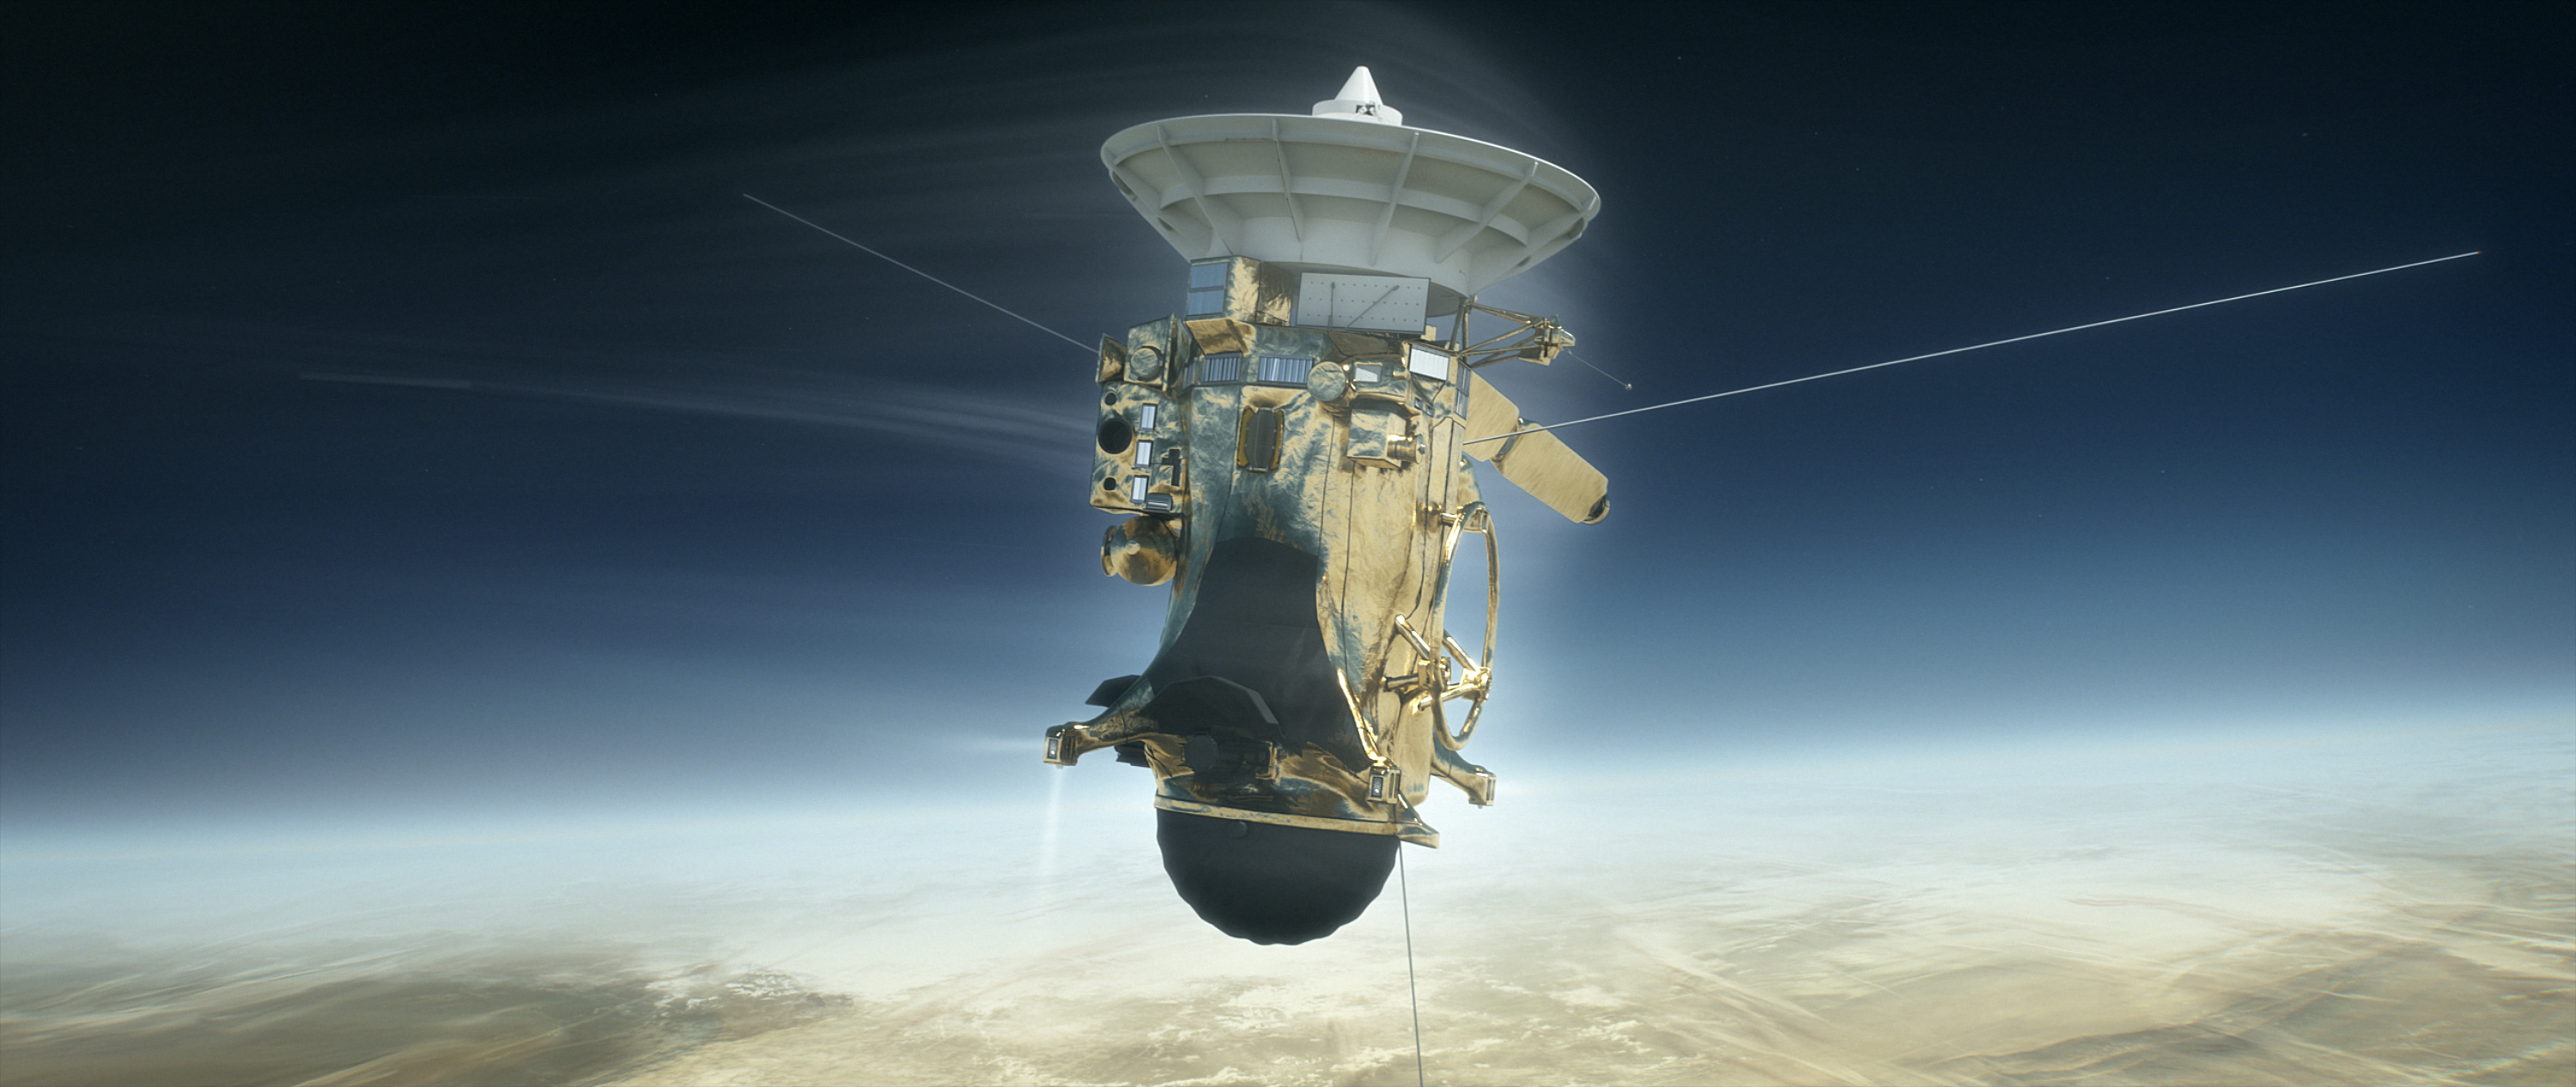 NASA Opens Media Credentialing for Sept. 15 Cassini Saturn ...